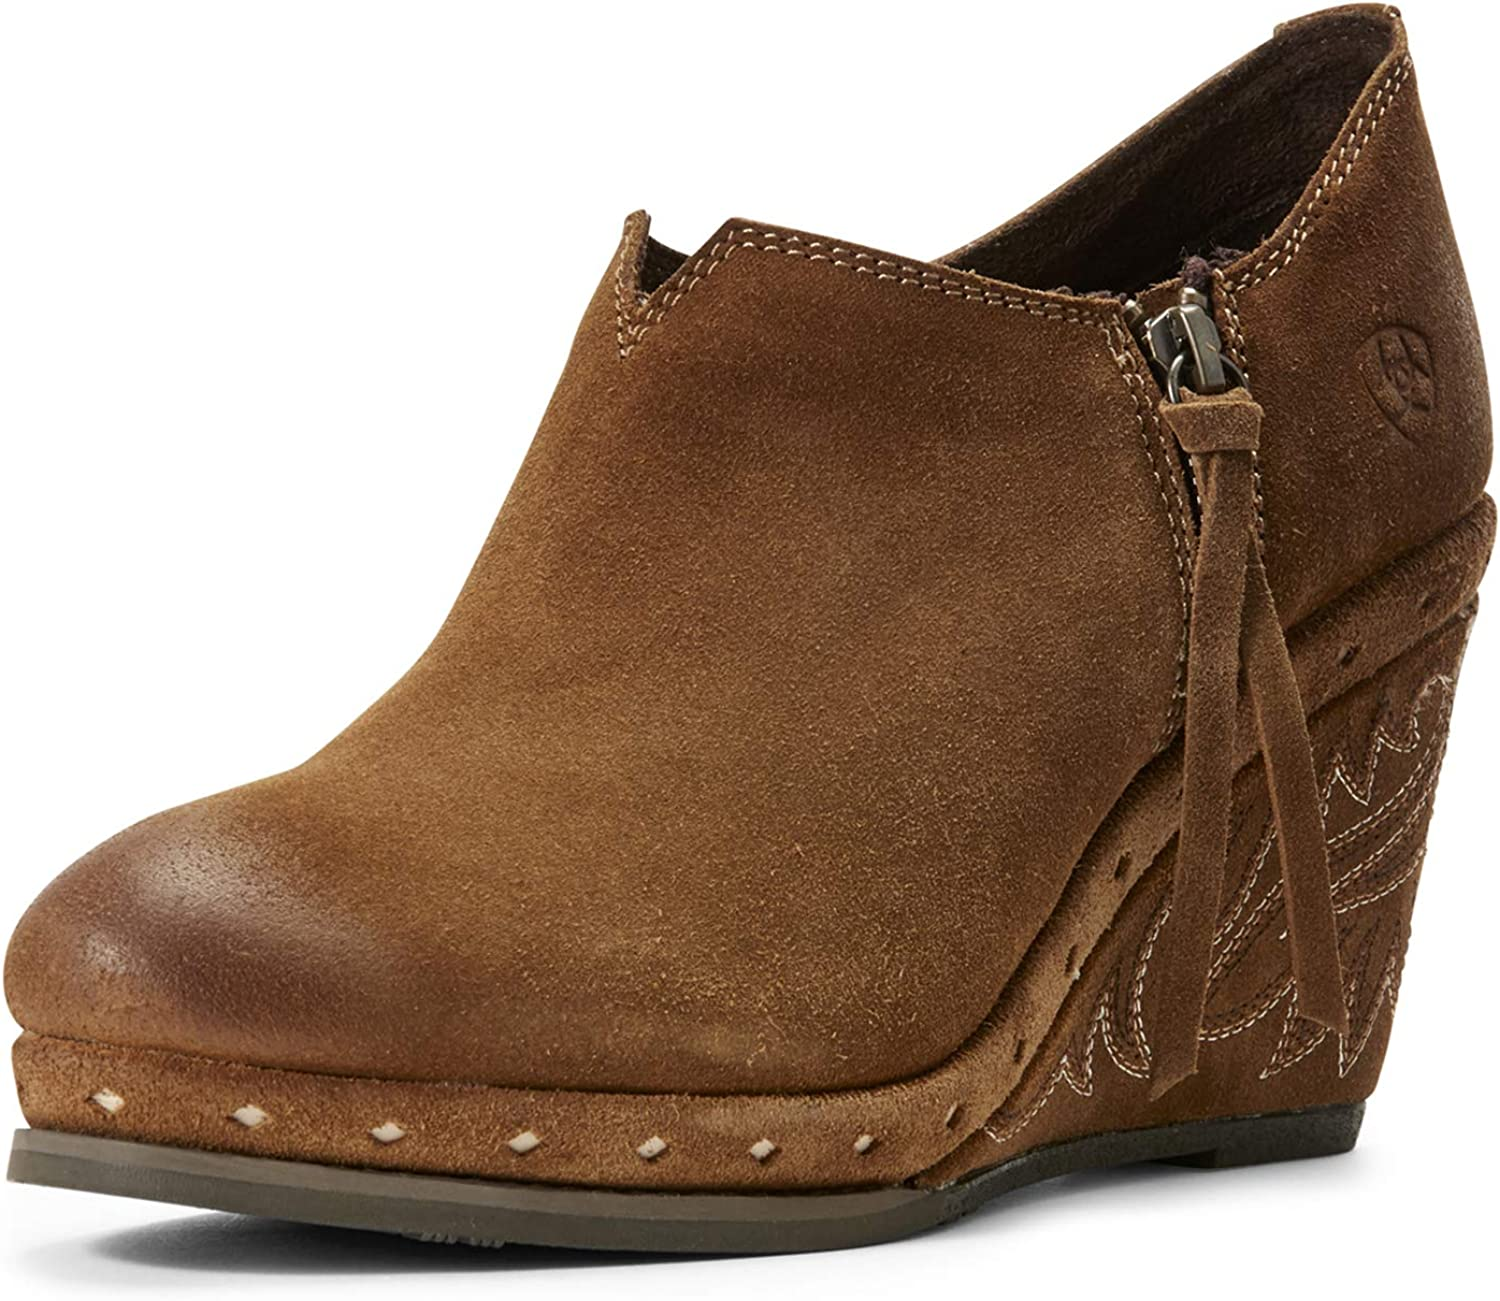 ! Super beauty product restock quality top! Ariat Women's Briley Western New item Boot